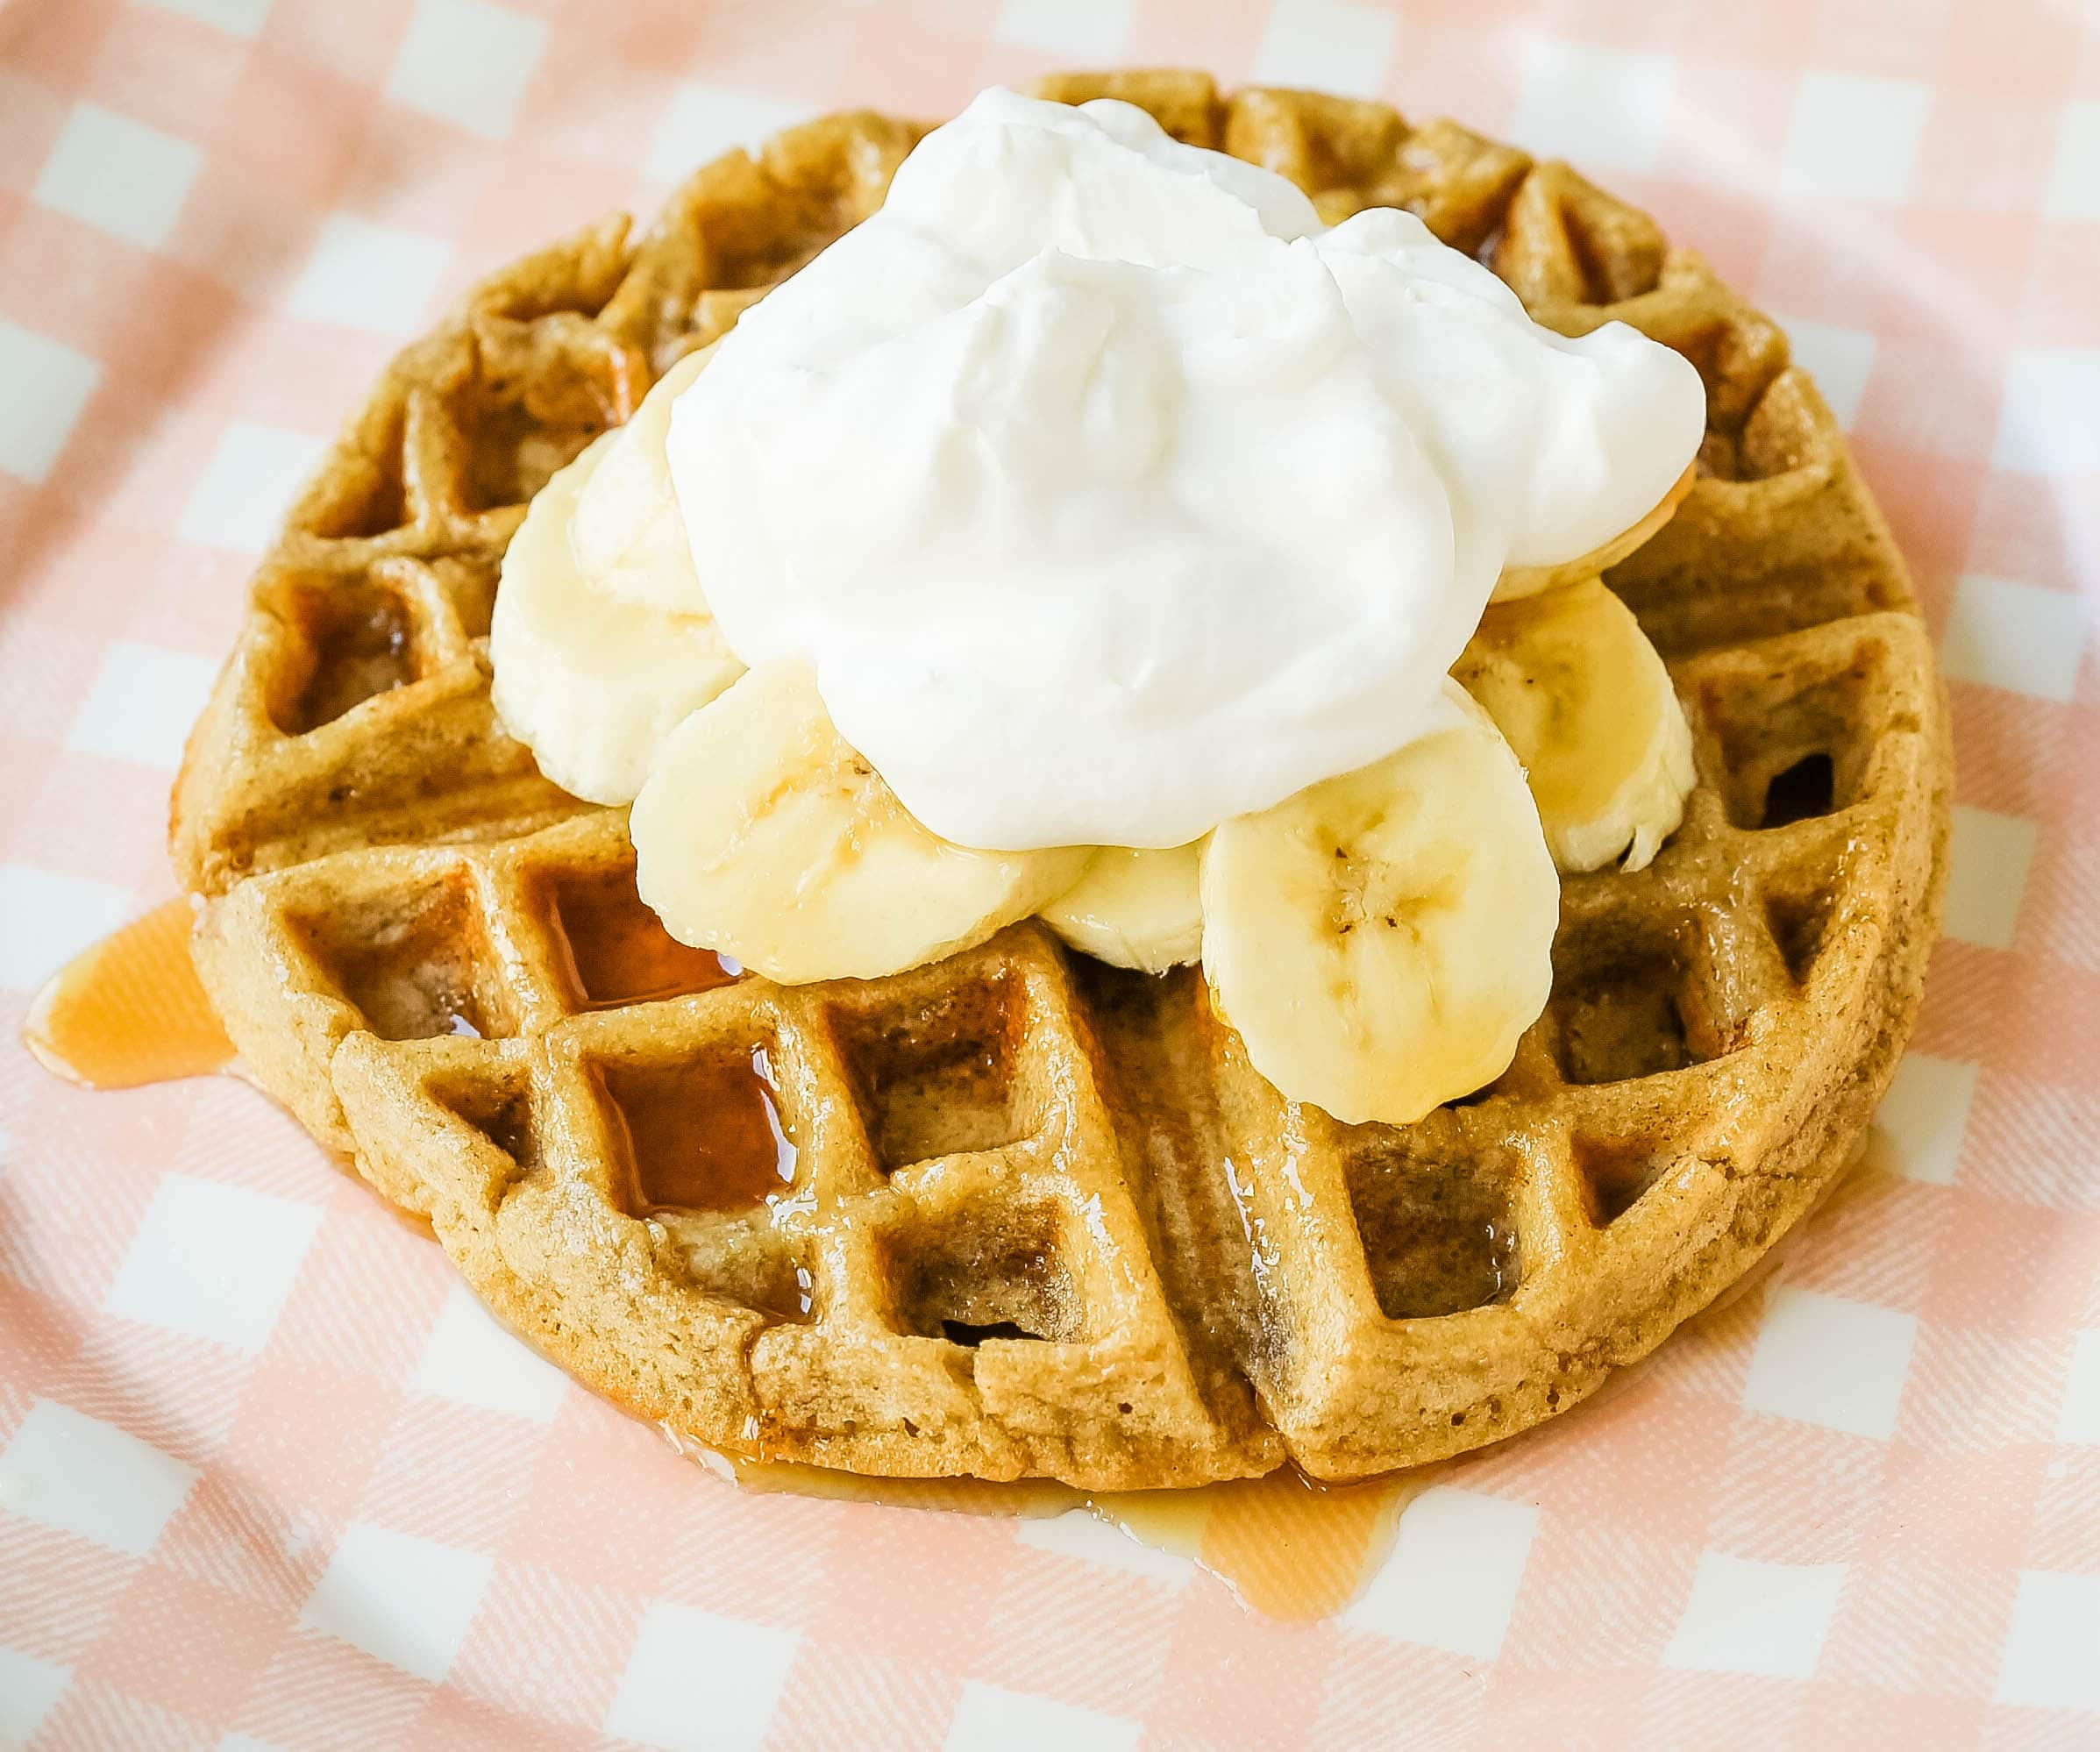 Healthy Gluten-Free Banana Oat Waffles Gluten-Free, Dairy-Free, and Refined-Sugar Free Waffles and you won't even miss it! These waffles give you the energy you need to start your day! #glutenfree #dairyfree #waffles #healthy #breakfast